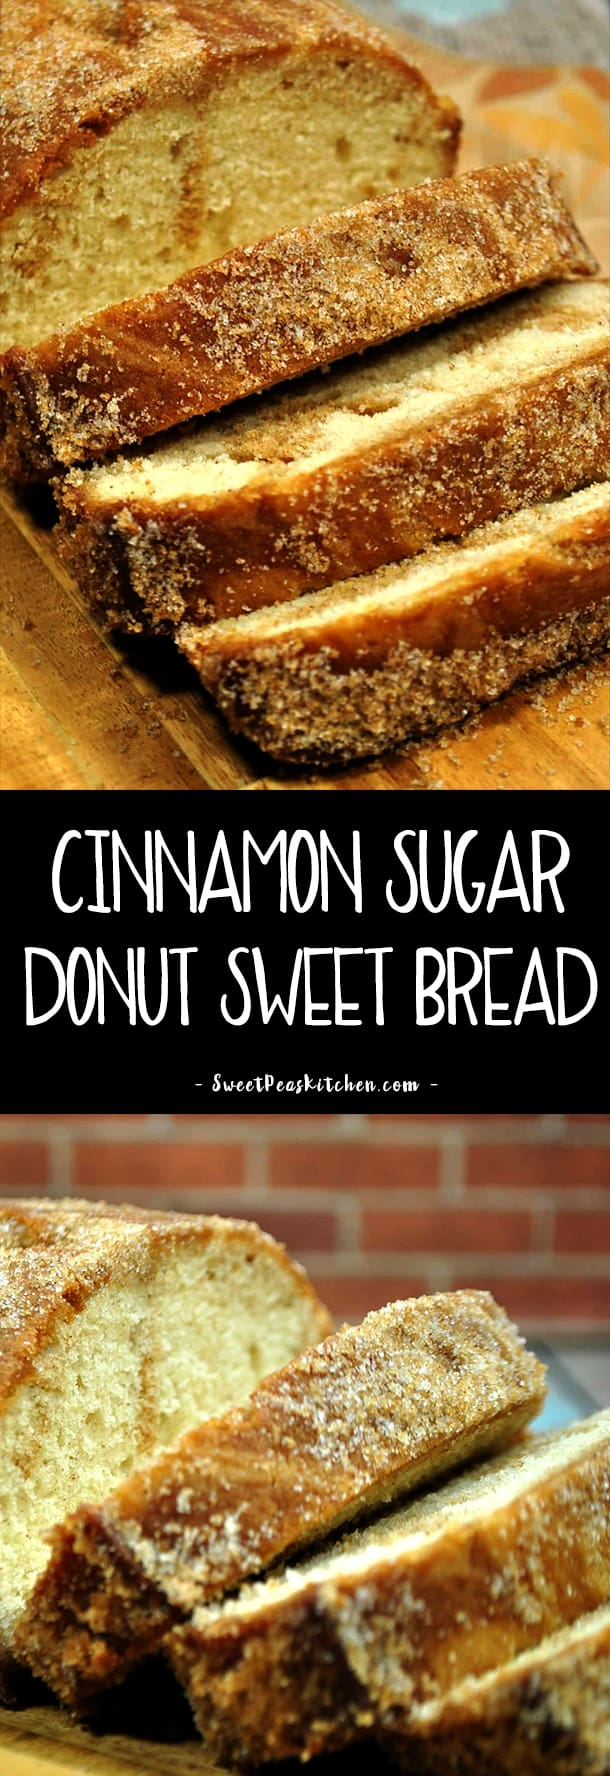 Cinnamon Sugar Donut Sweet Bread